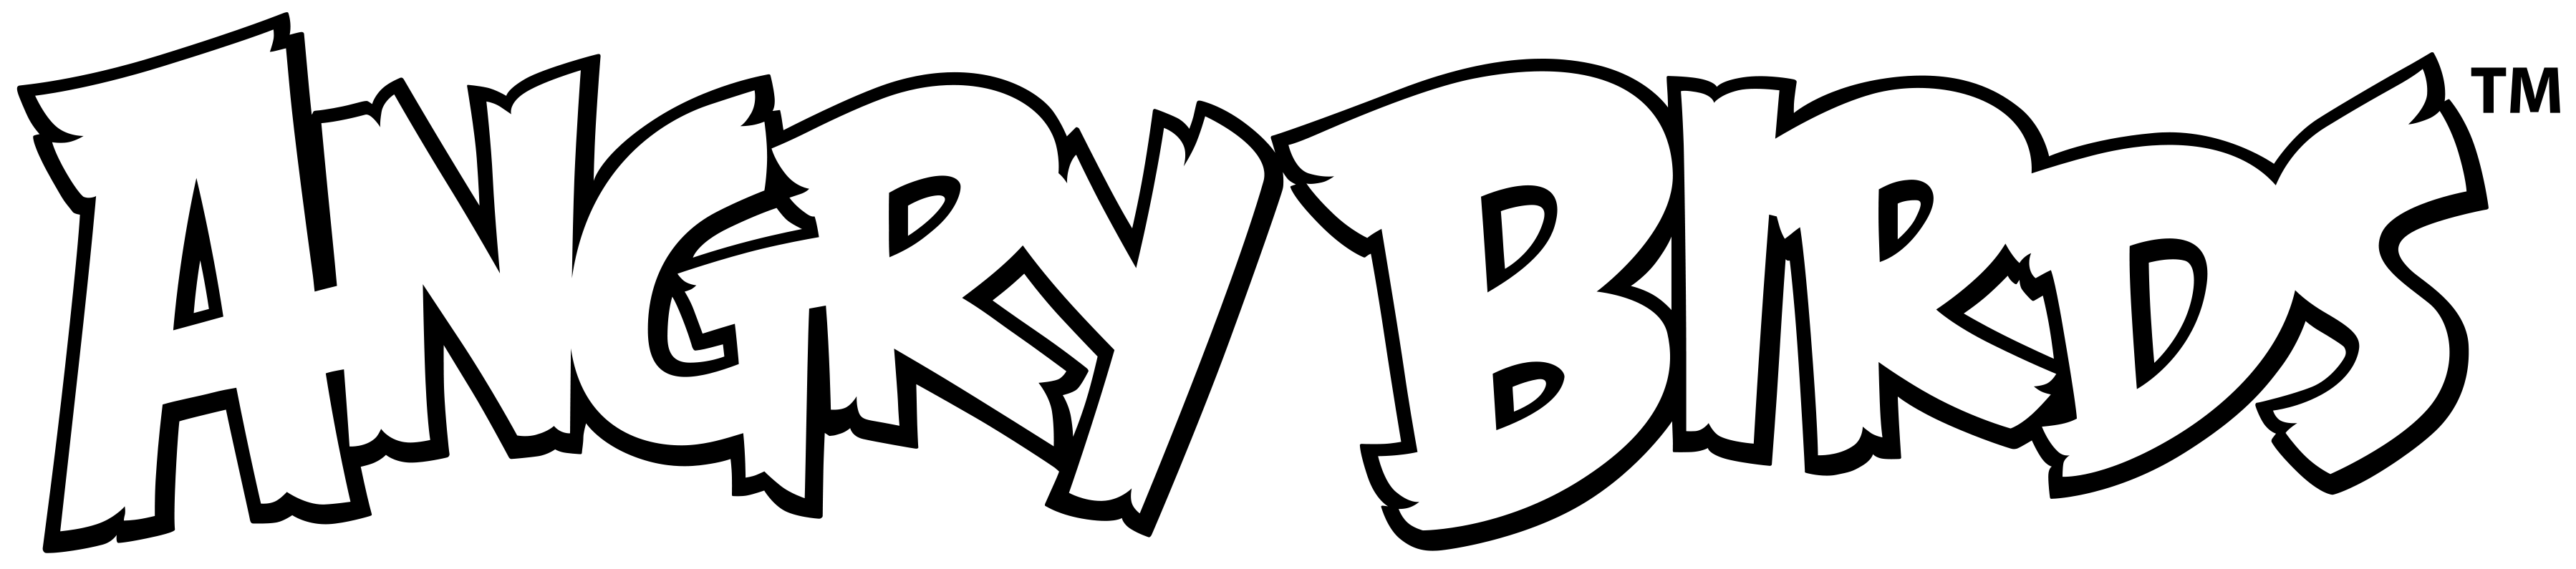 Angry birds movie logo png. By brunomilan on deviantart